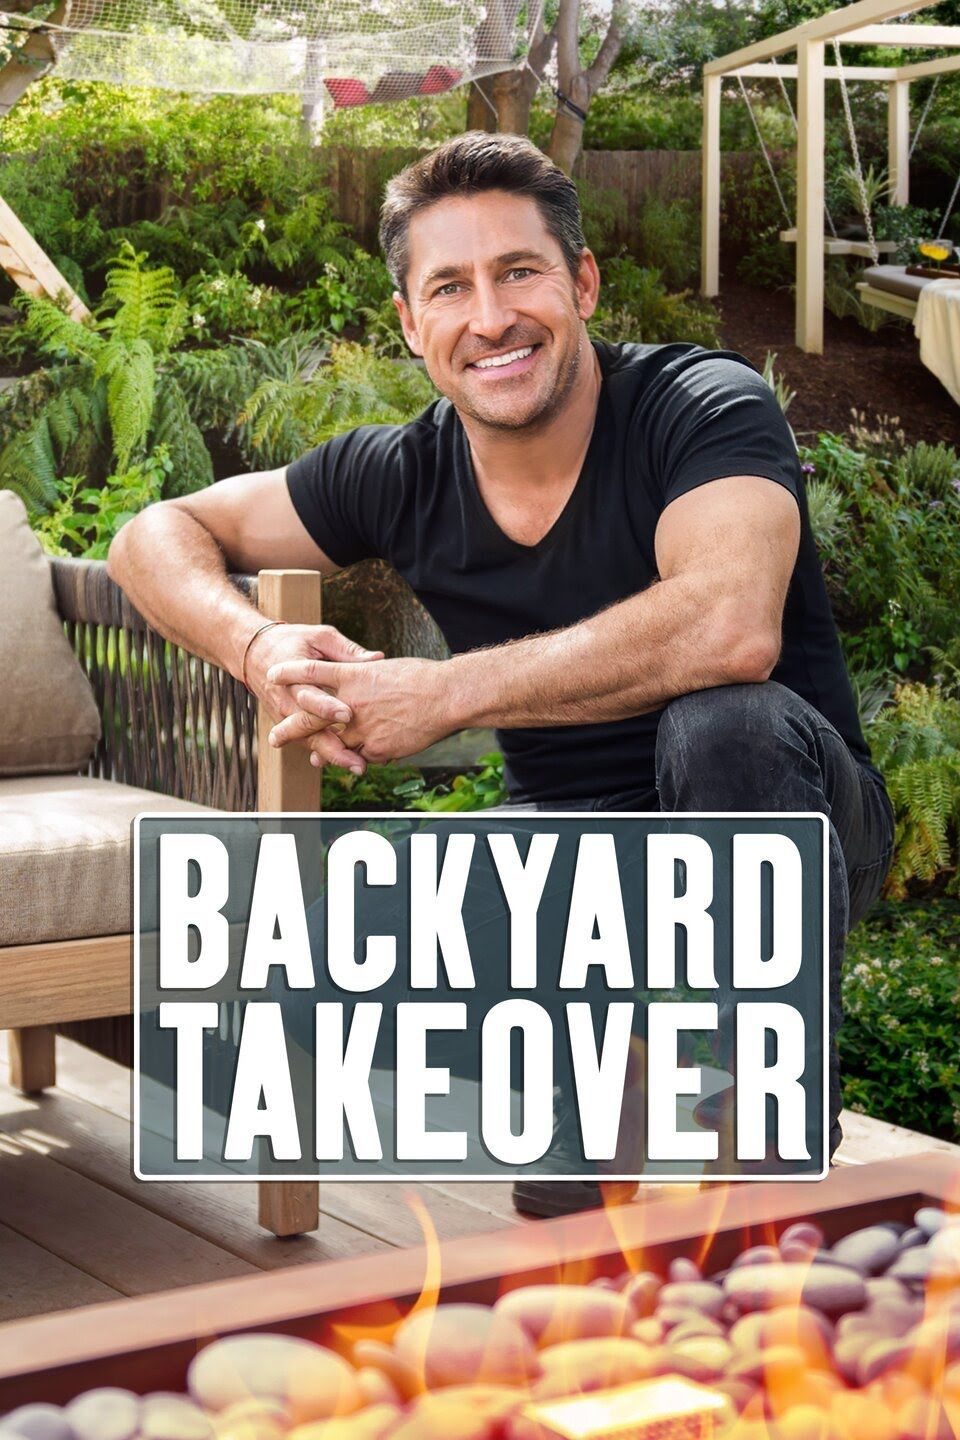 Backyard Takeover ne zaman